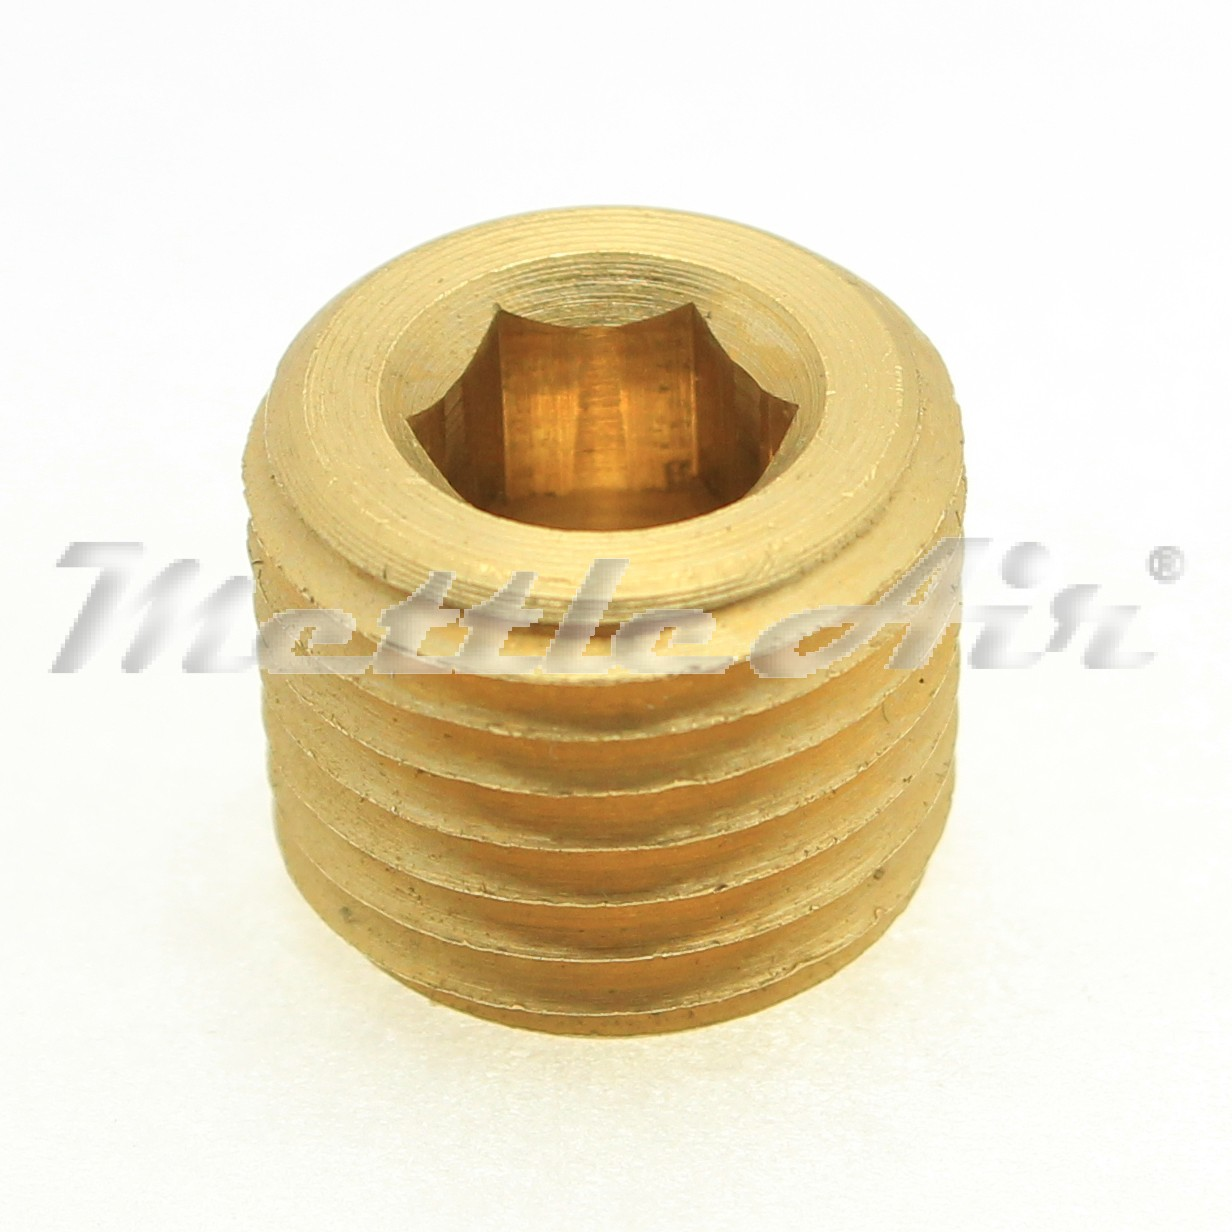 "British Parallel Thread Brass Countersunk Pipe Plug 3/8"" BSPP (G)"